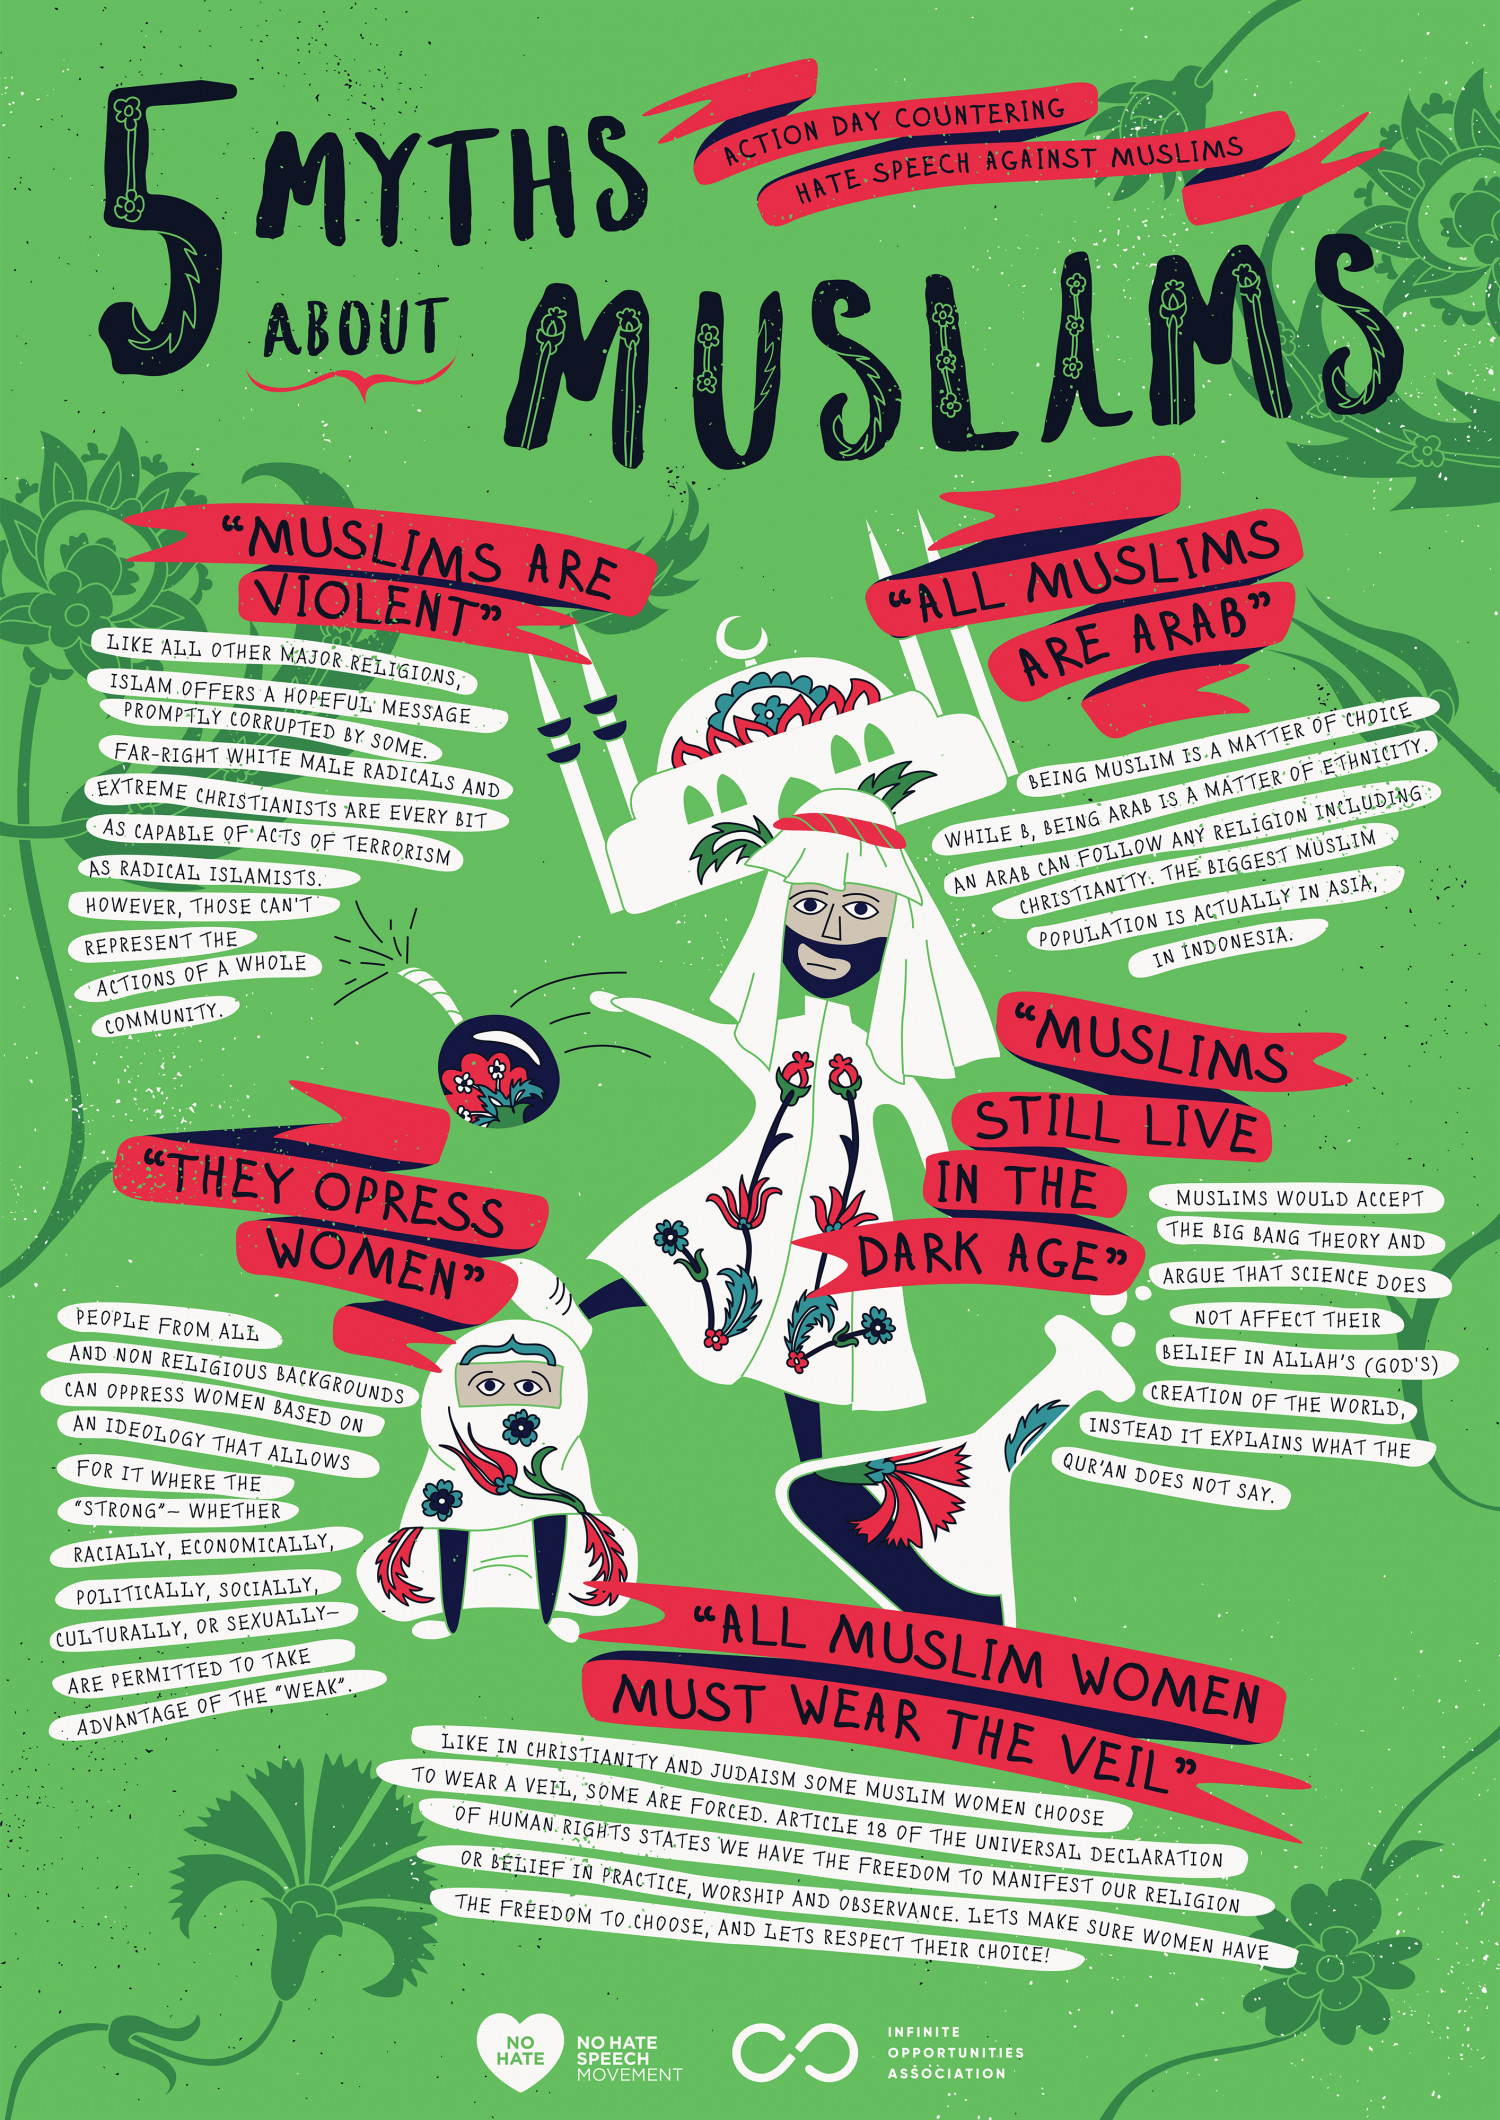 5 myths about Muslims Infographic